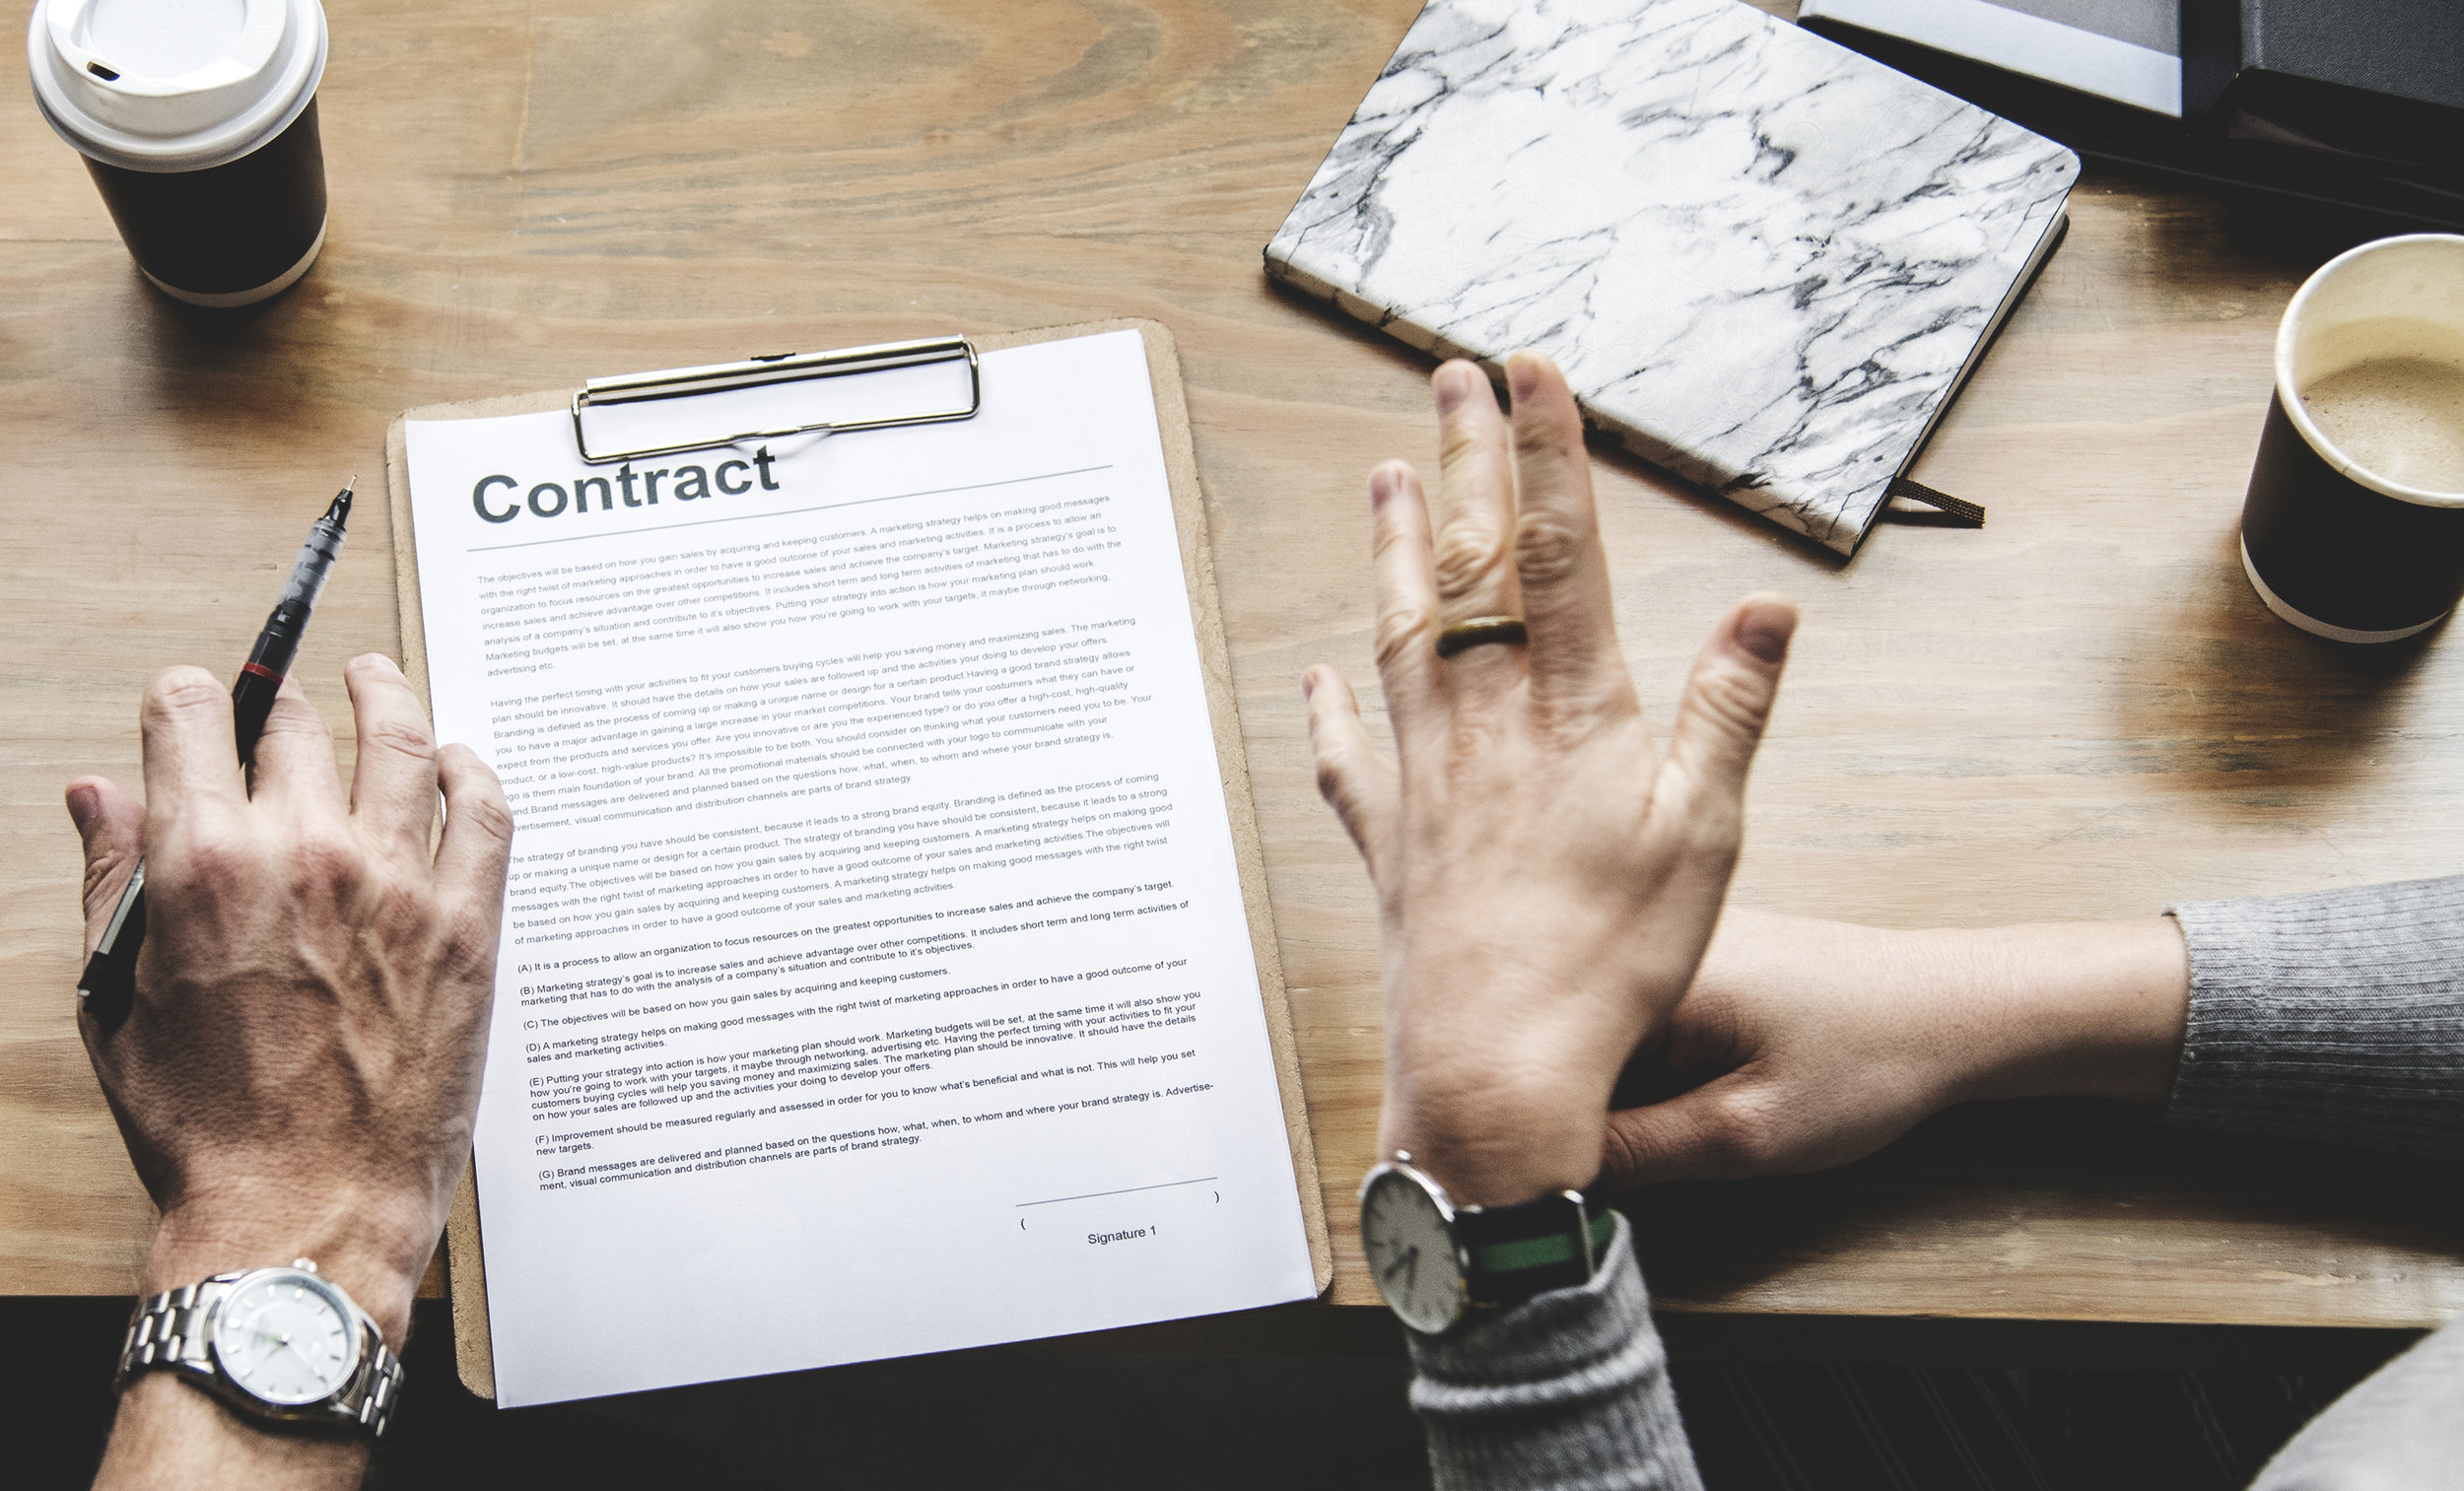 No Long Term Contracts - Social Media Time is flexible based on your budget. There is no long term contract, you can upgrade, downgrade, or cancel at any time - with a minimum of a 30 day period. We are very proactive with our approach and will ensure you get the results you desire.